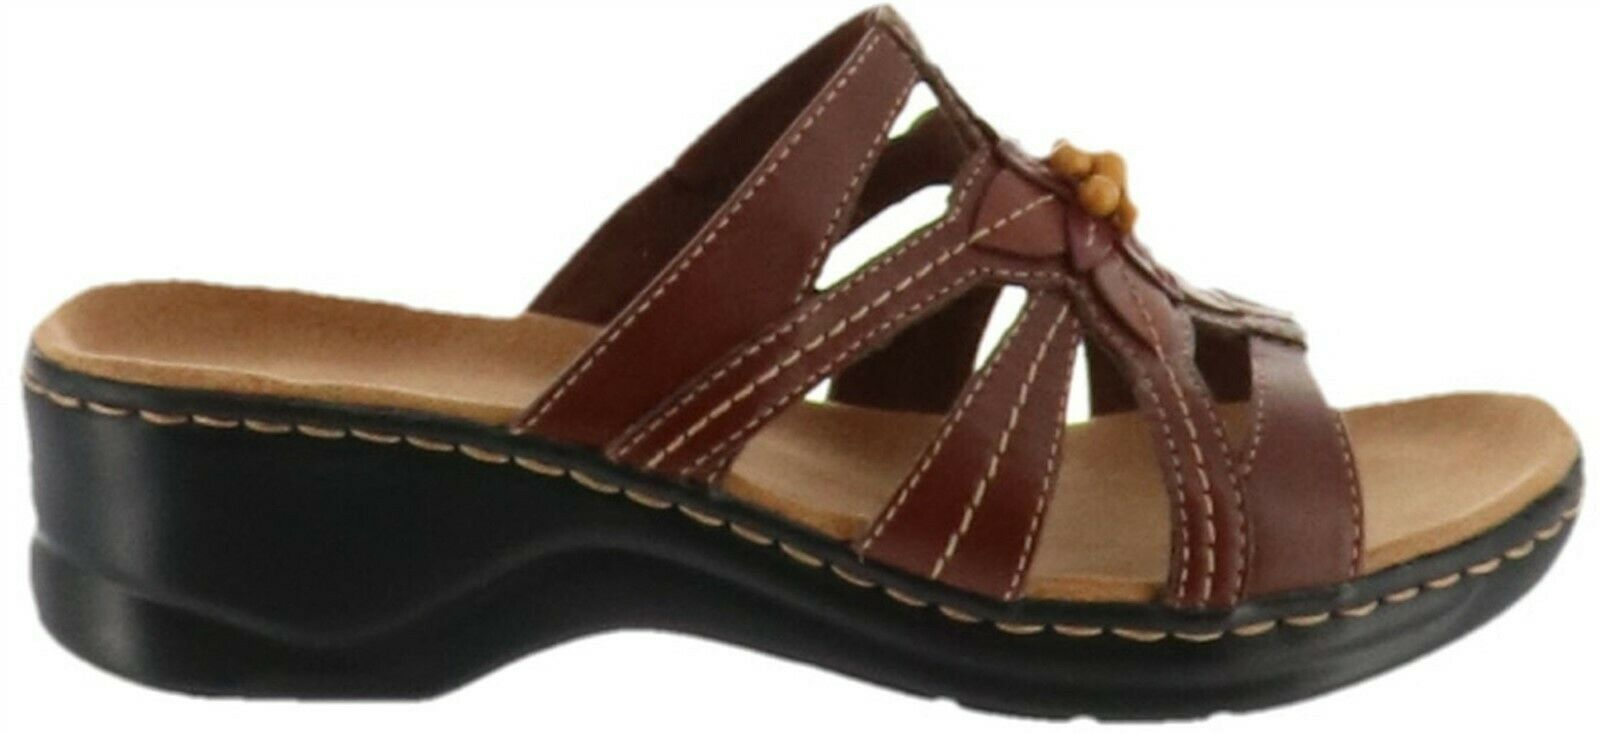 Clarks Bendables Lexi Myrtle Leather Slides Bead Brown 8.5N NEW A231110 - $74.23